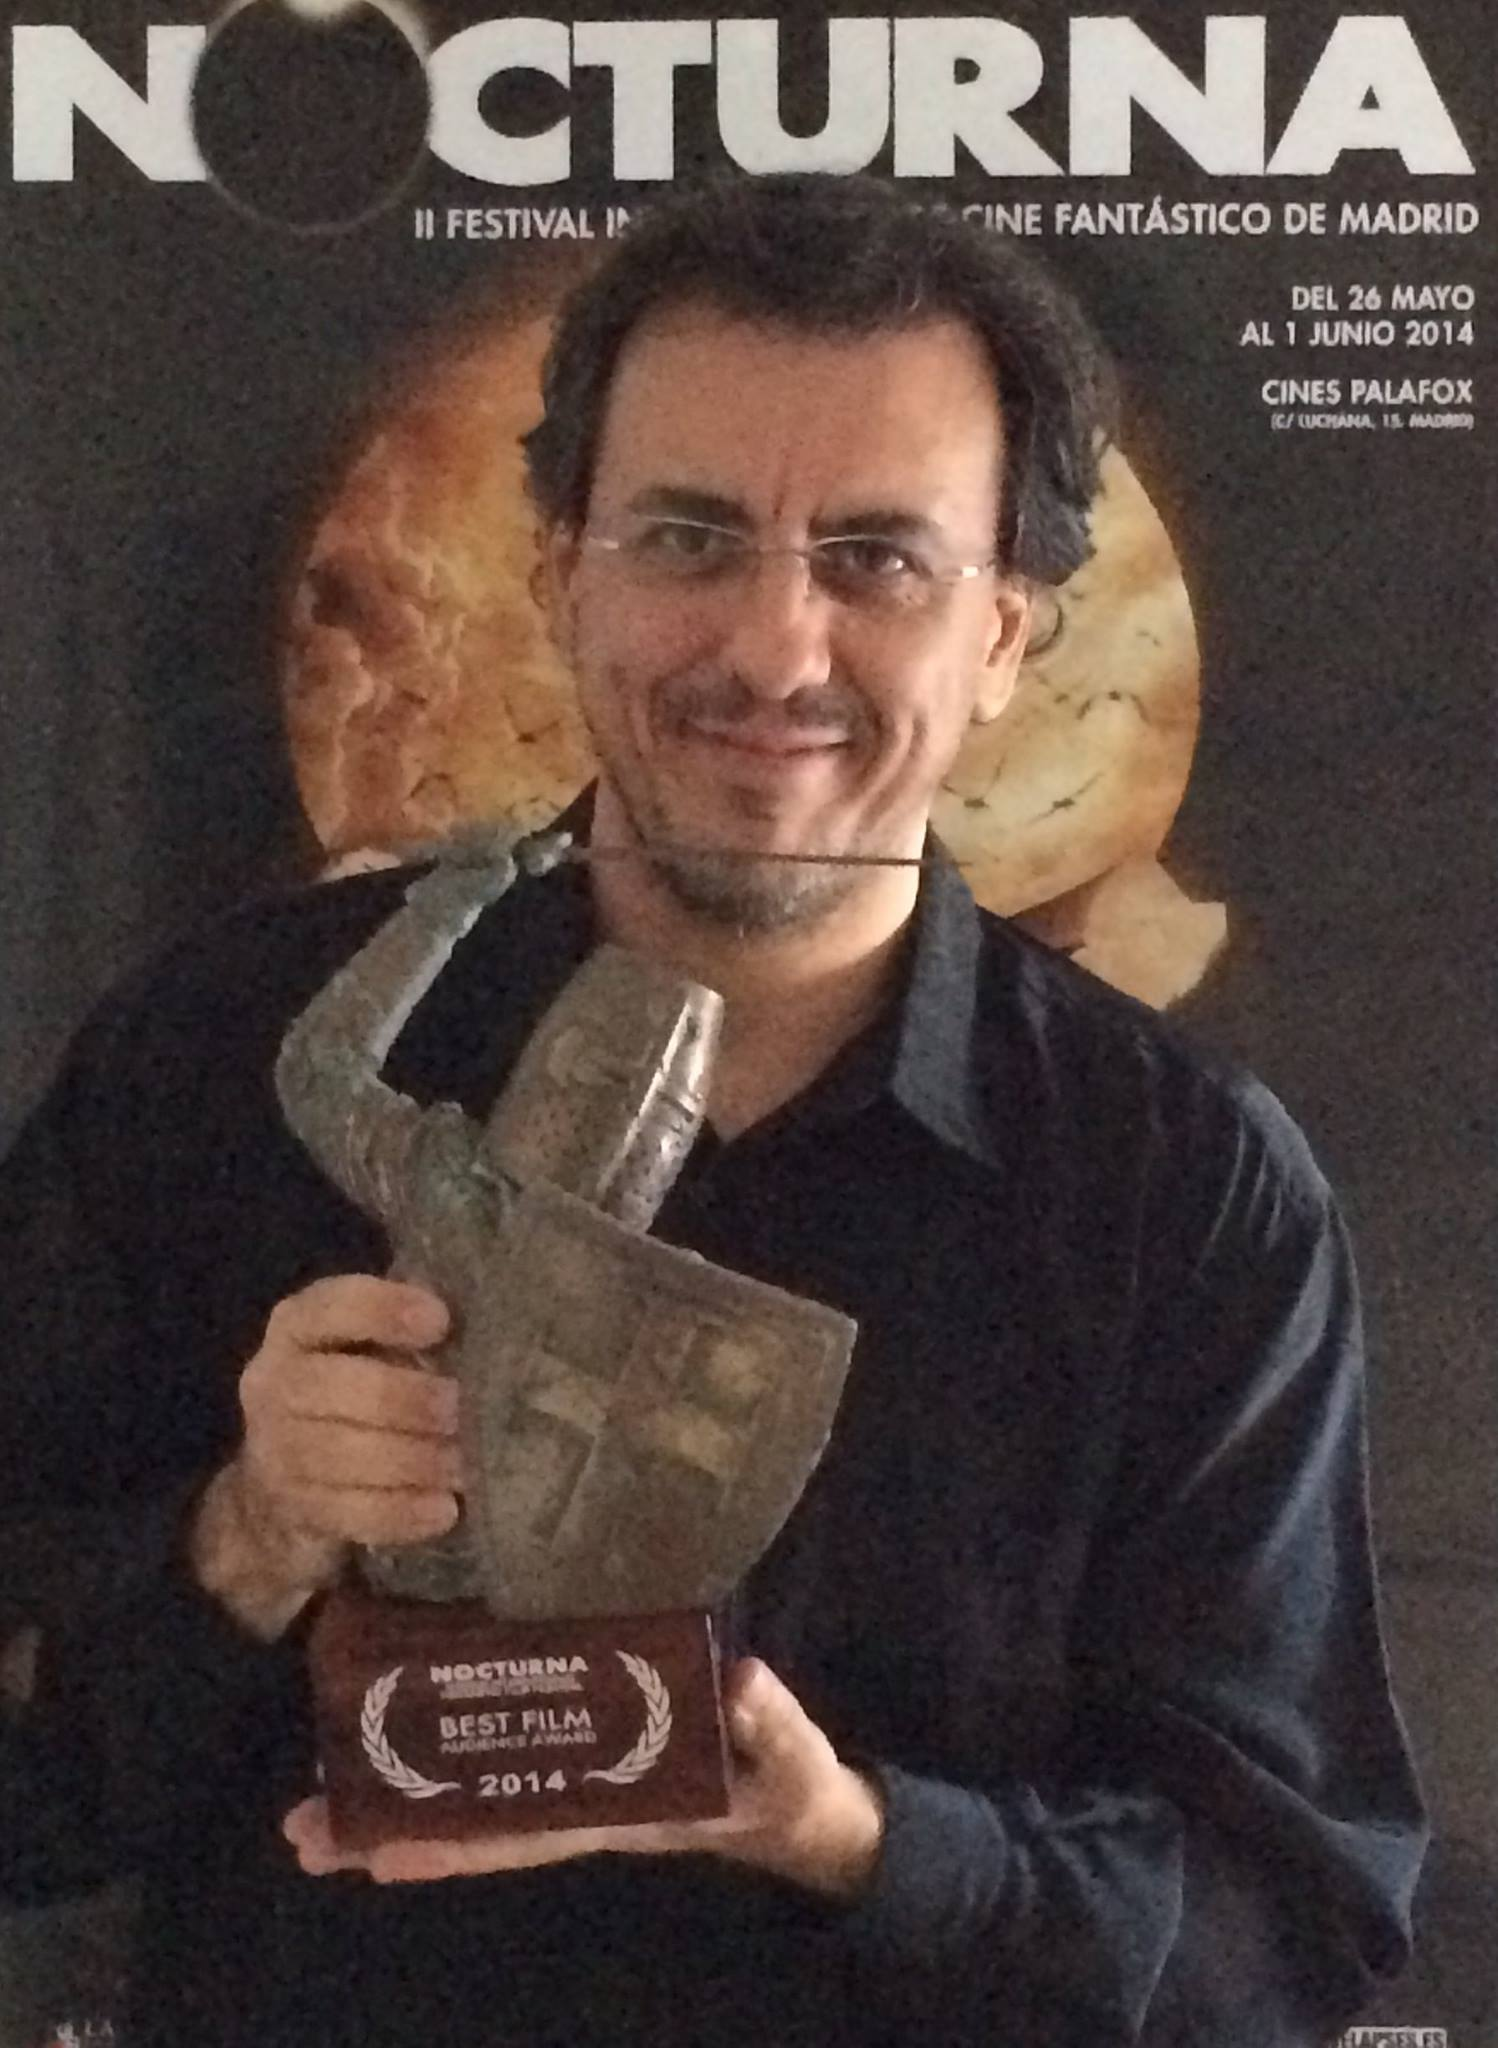 Nocturna Award-for-Savaged-the-movie.jpg